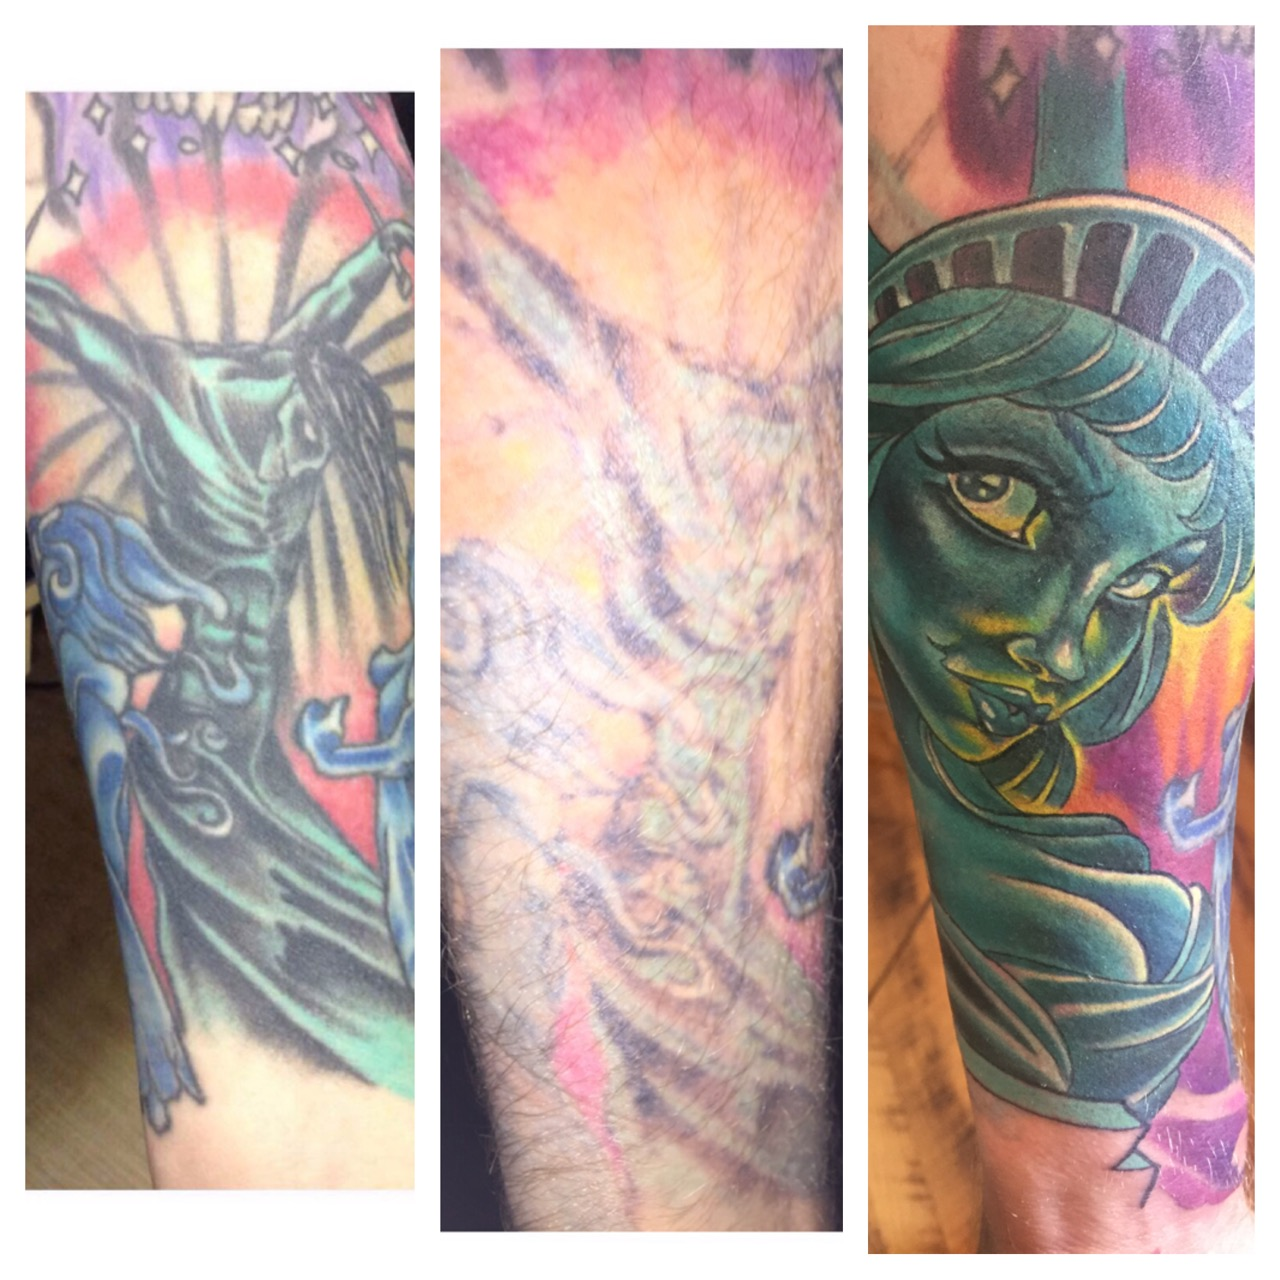 Lightened left for coverup on the right